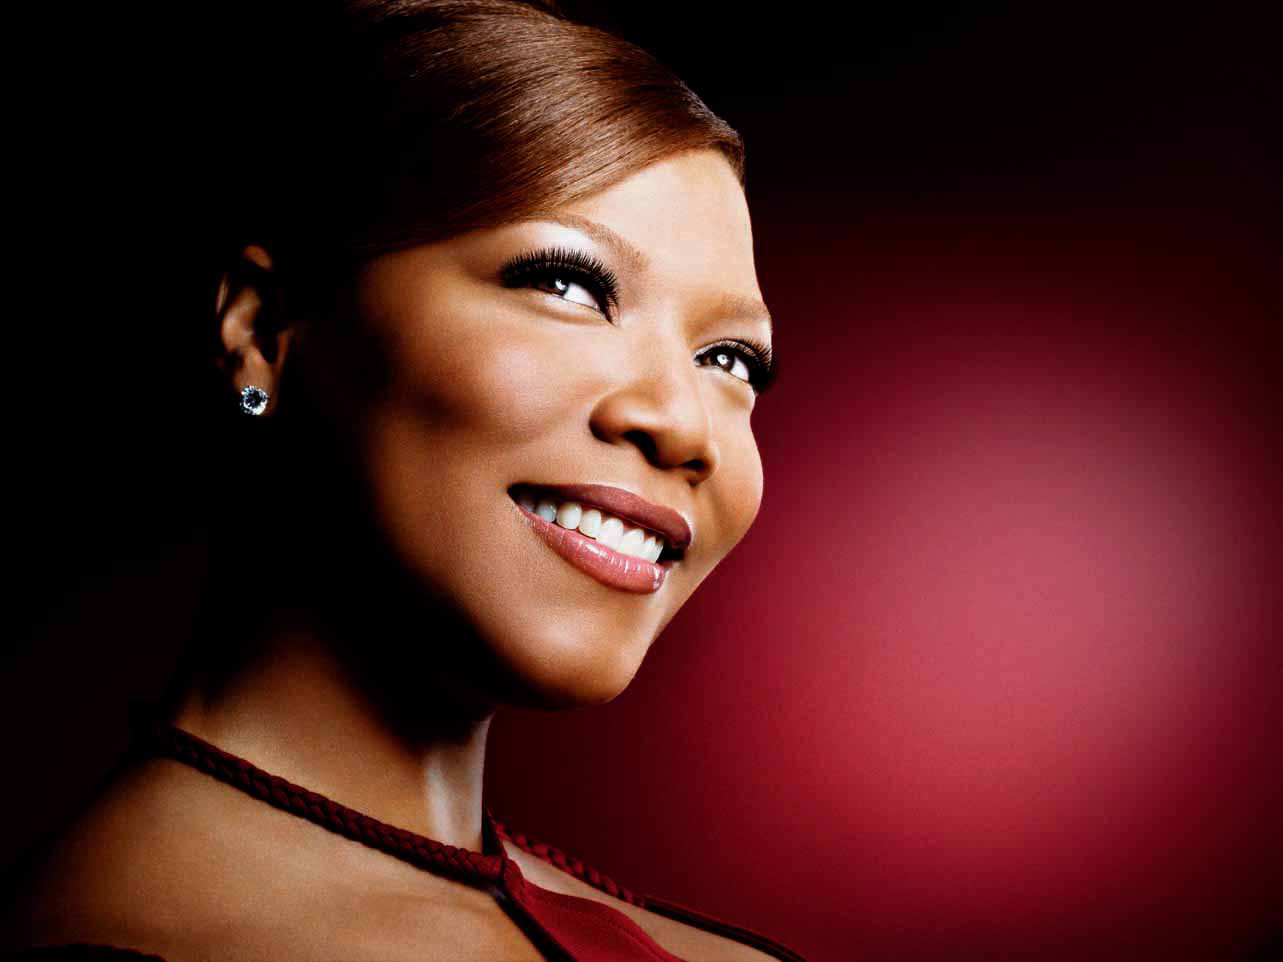 Queen Latifah Fakes Minimalist queen latifah to headline long beach pride 2012 | autostraddle